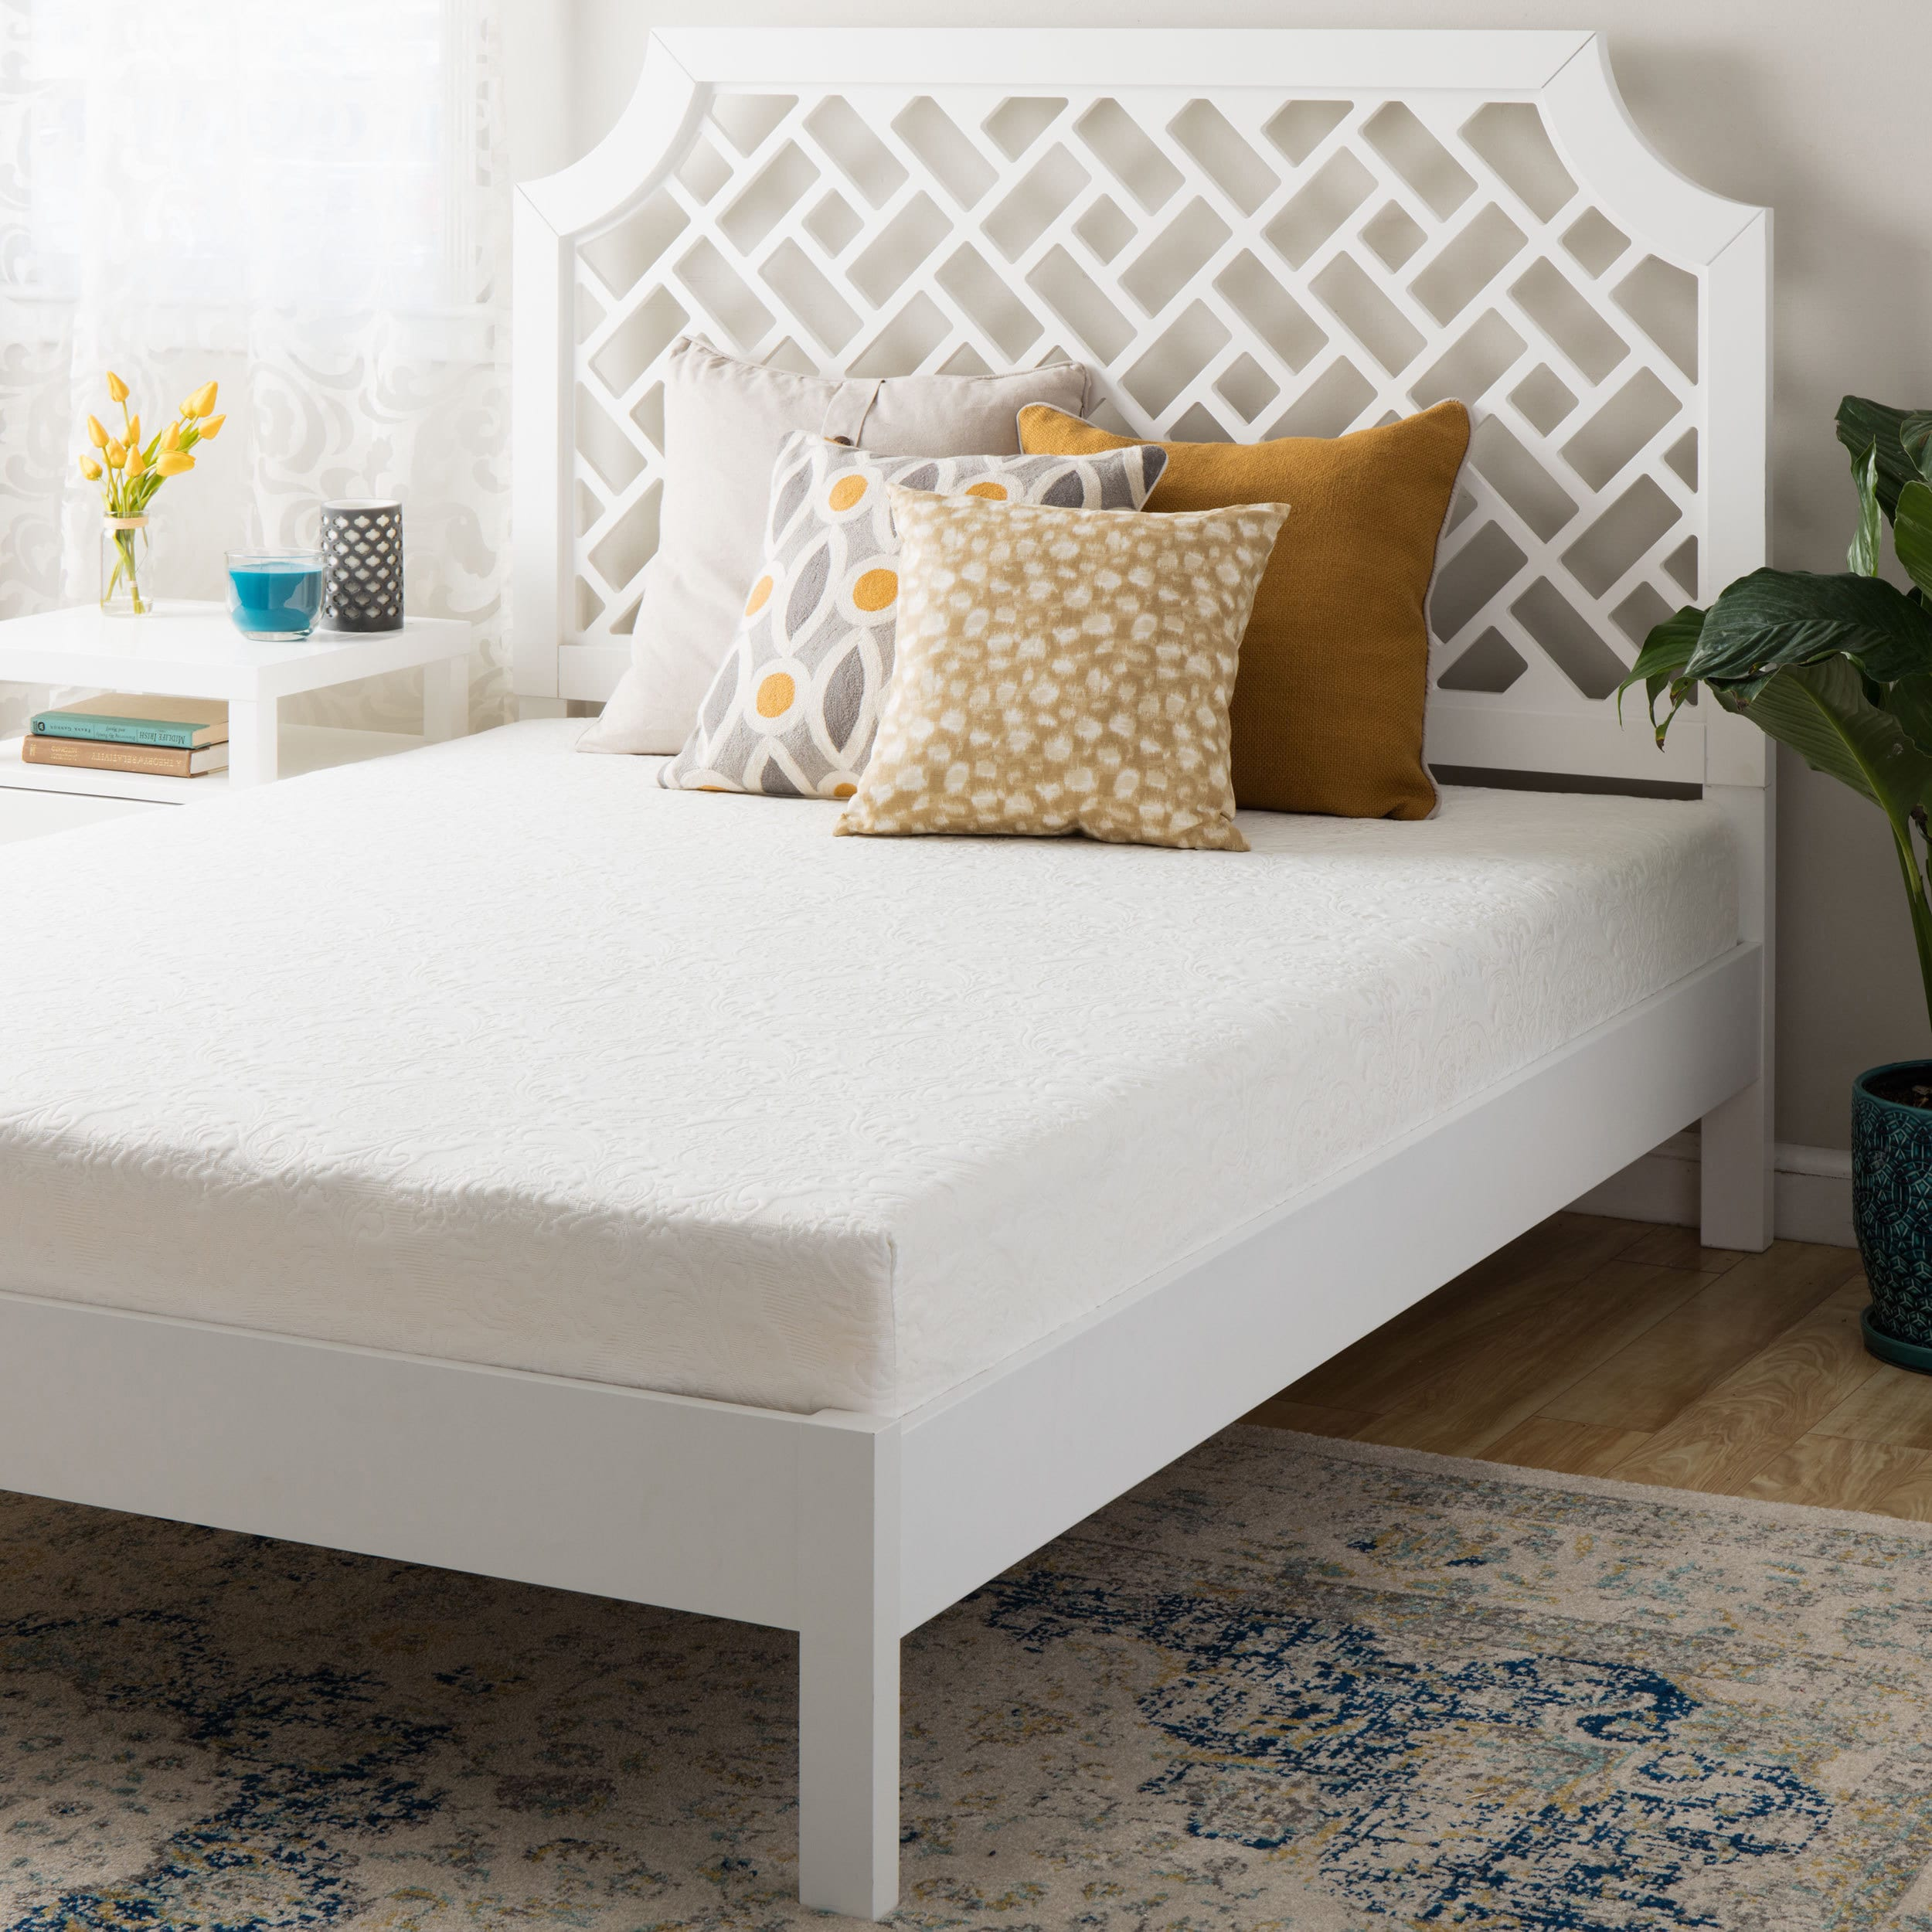 Orthosleep Product Double Layered 8-Inch Full-size Memory Foam Mattress - Off white